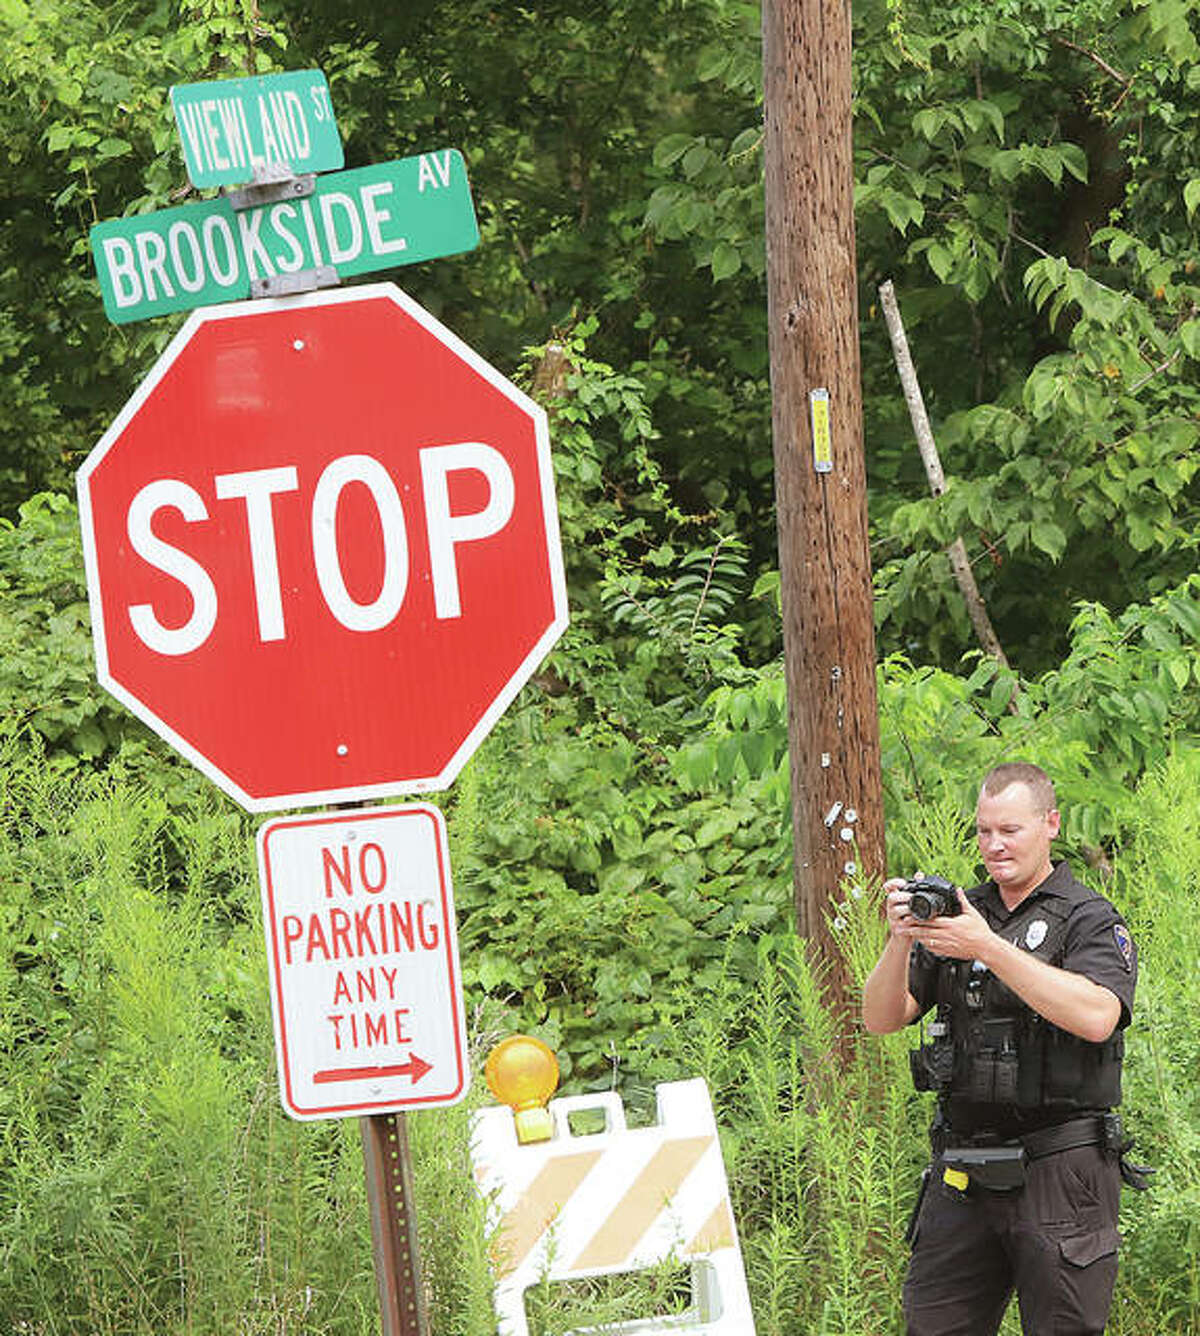 An Alton police officer takes pictures of the intersection of Viewland and Brookside streets Monday afternoon.